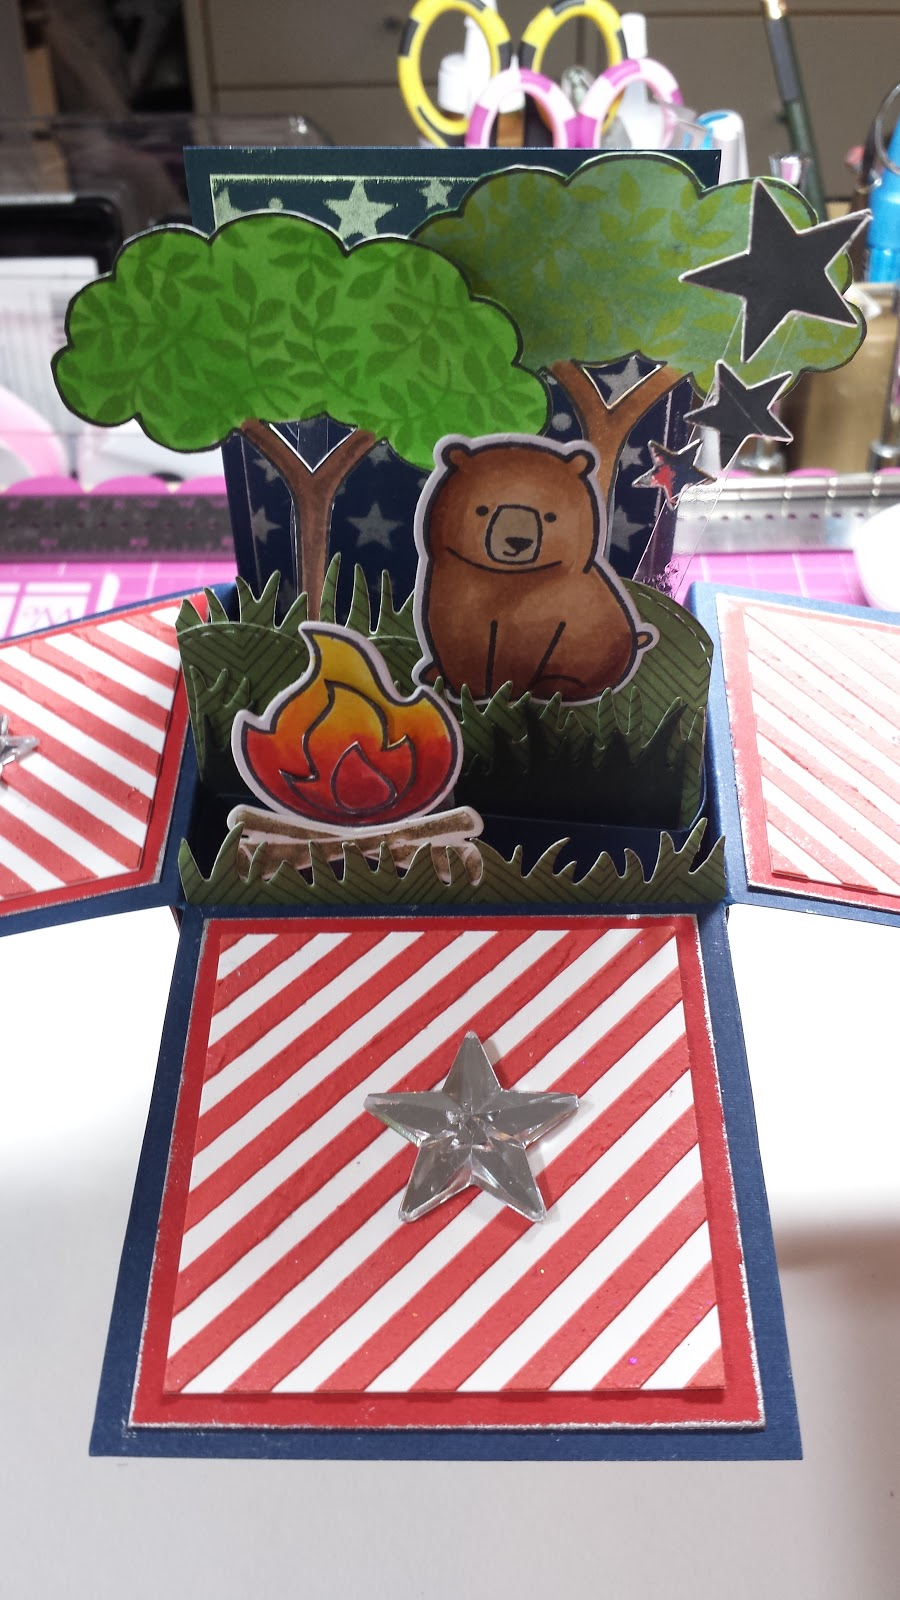 Lawnscaping Challenge, Lawn Fawn, 4th of July